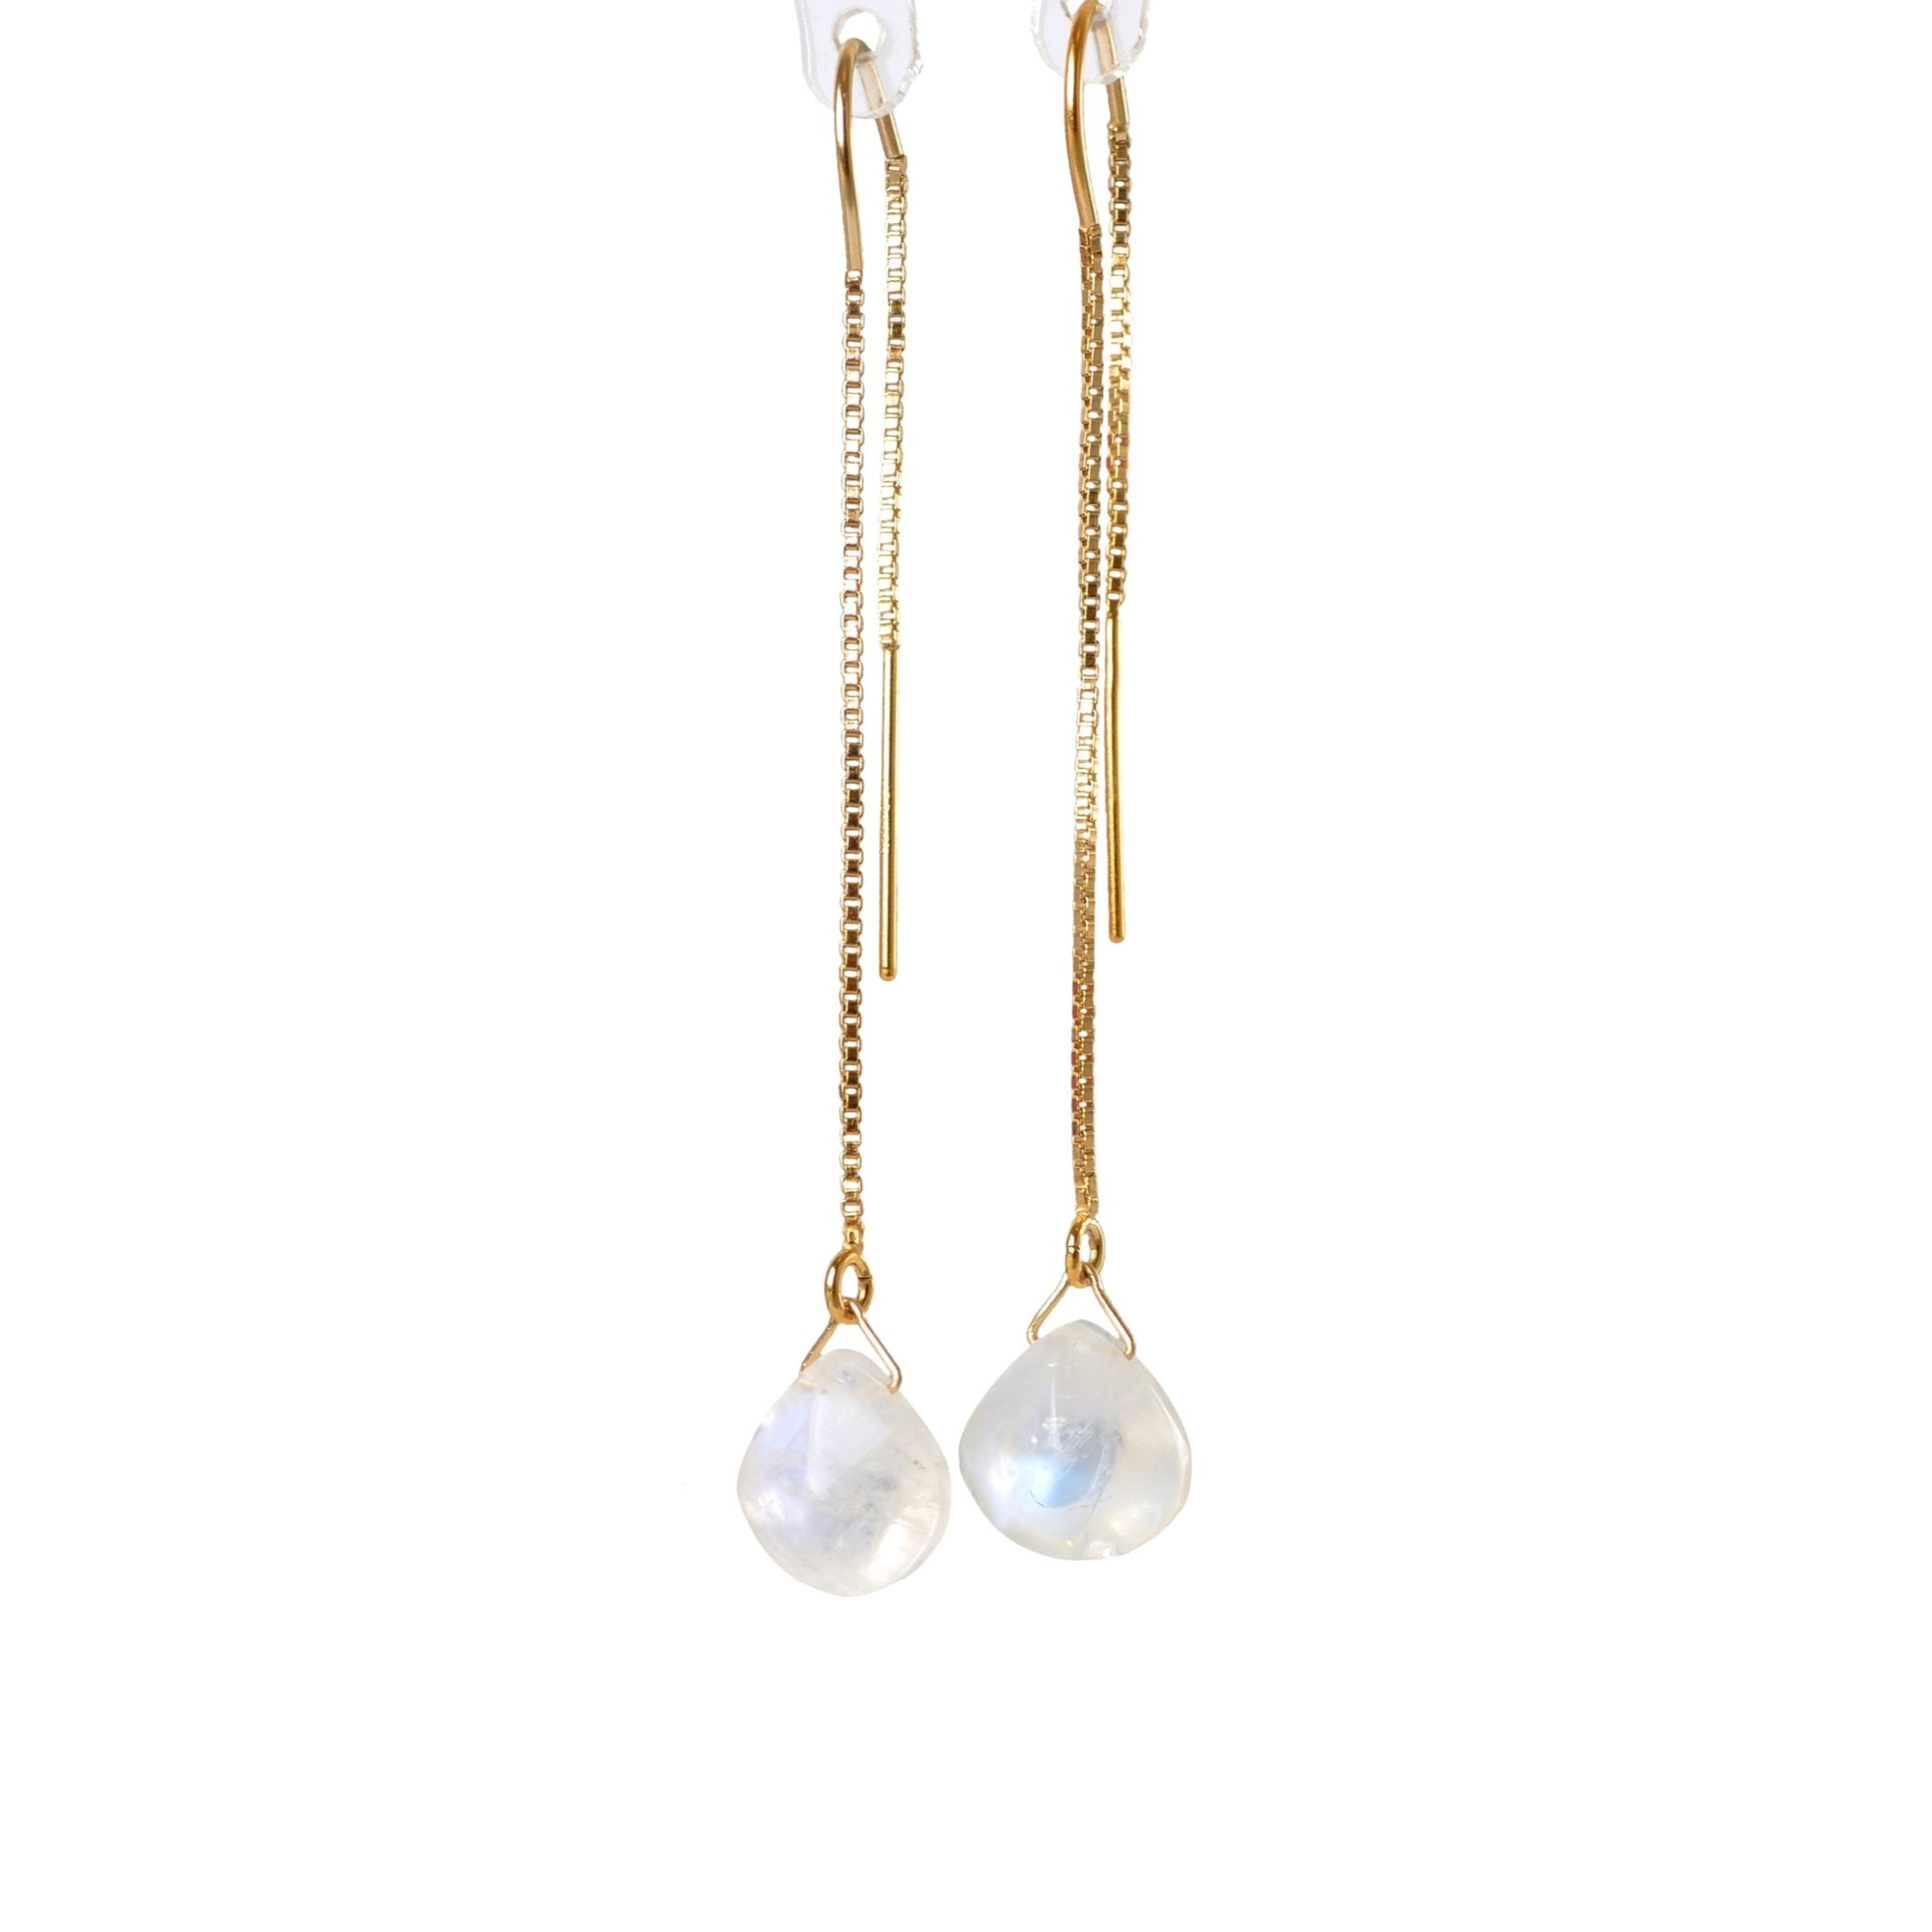 Rainbow Moonstone Threader Earrings - Boutique Baltique